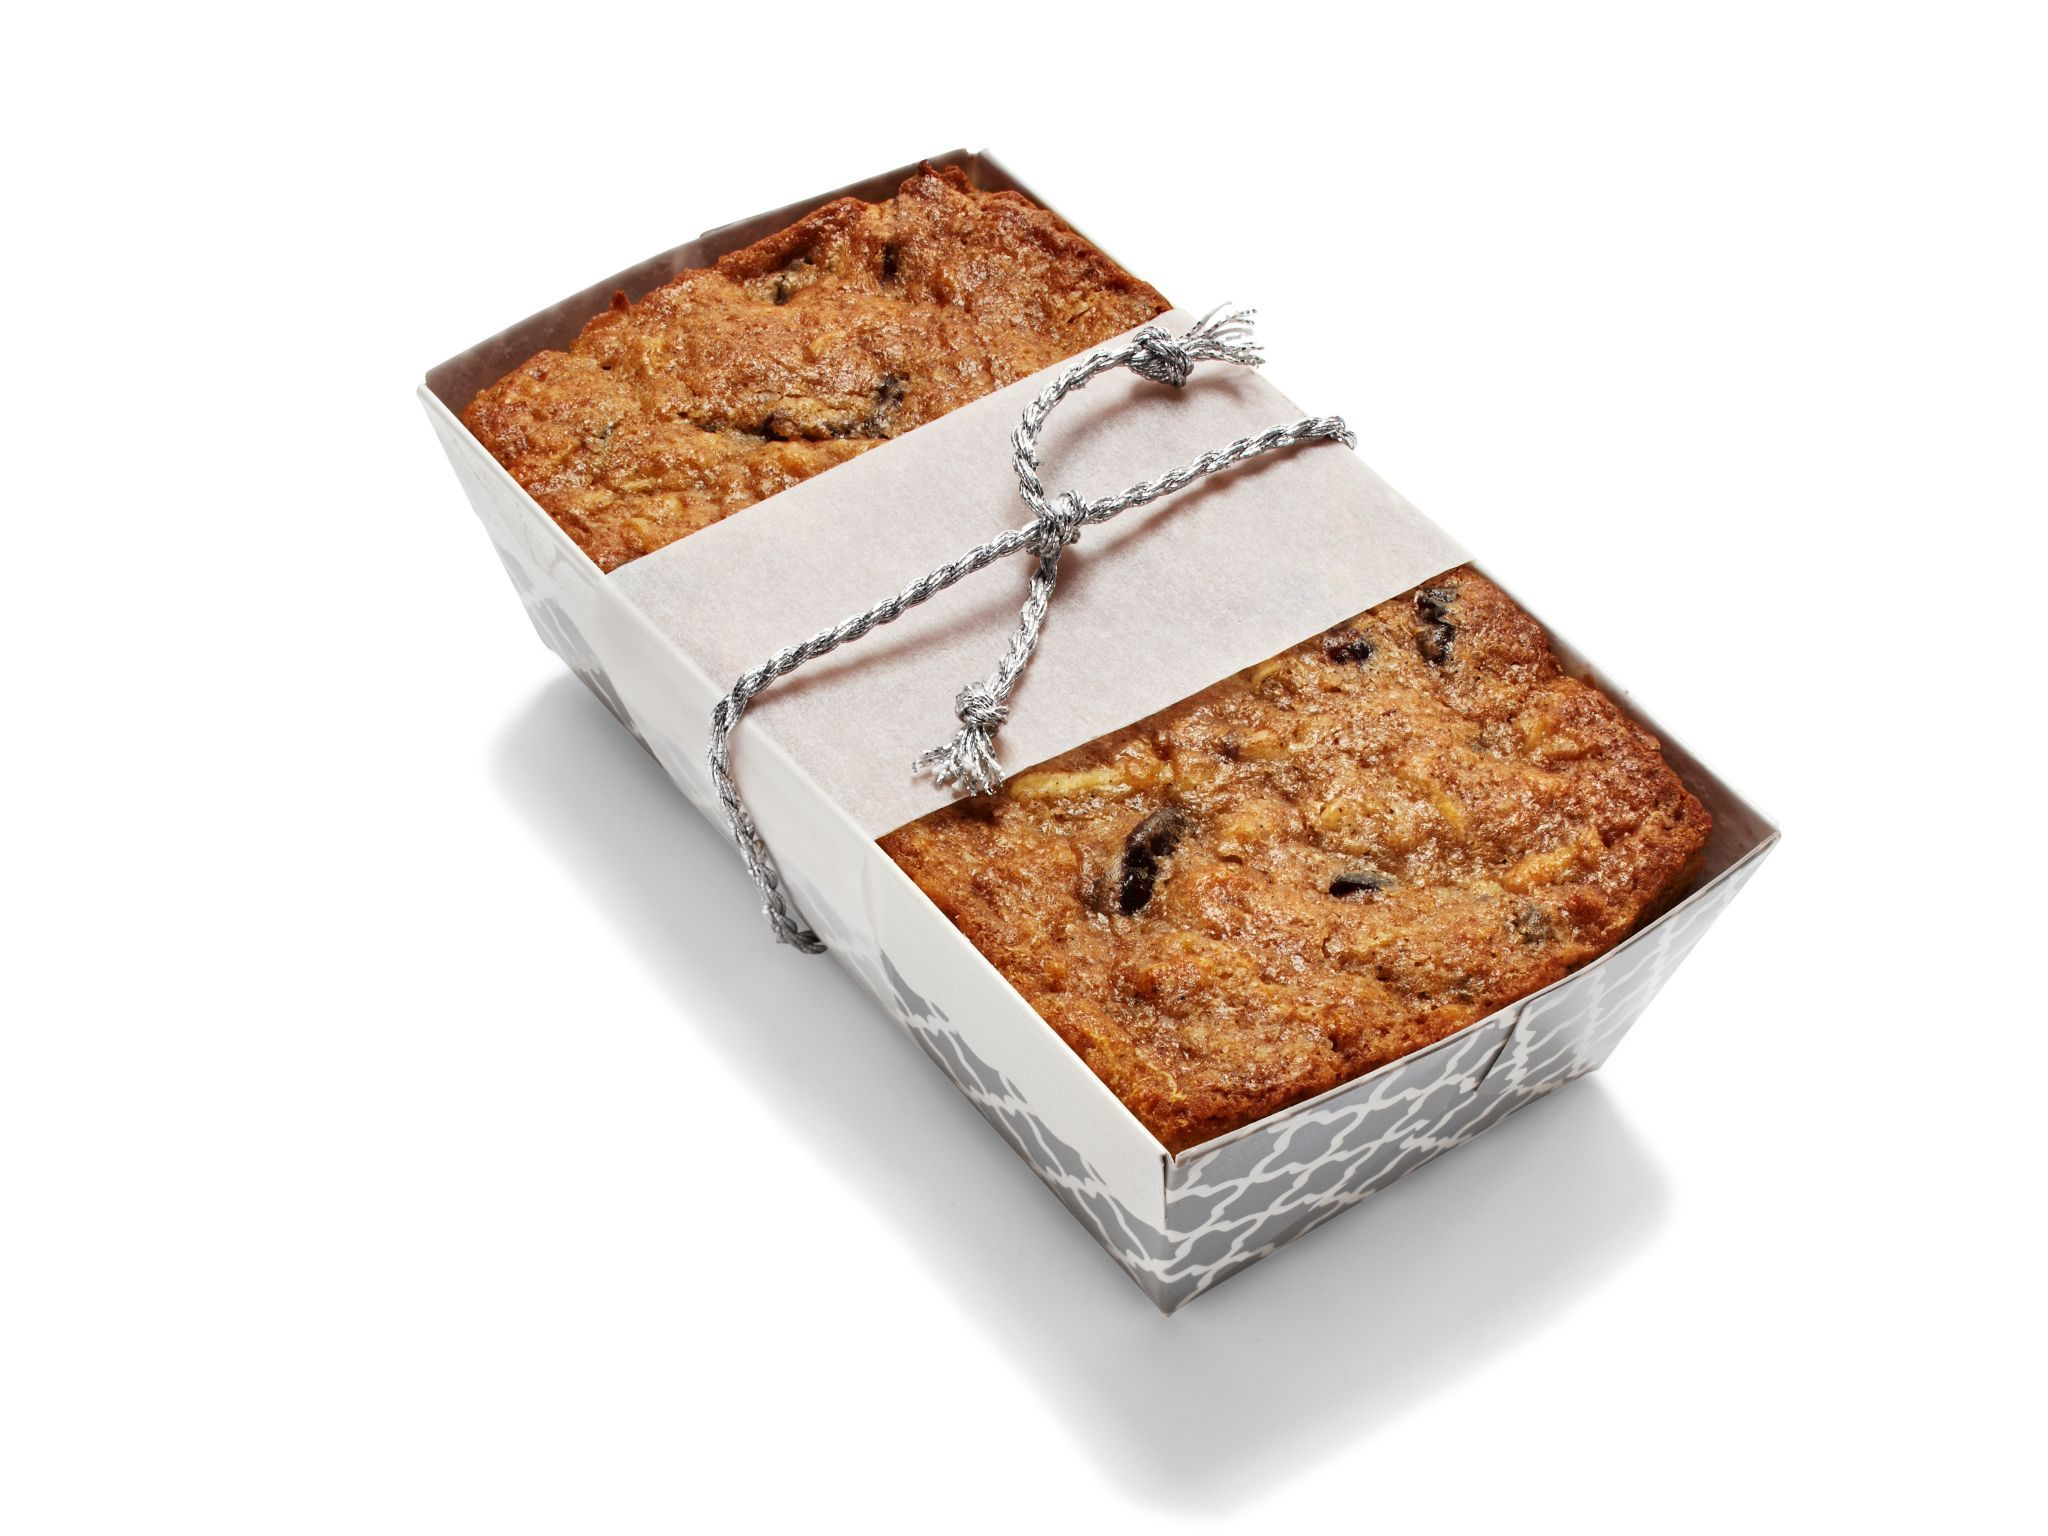 Mini apple cranberry loaves recipe from food network kitchen via you cant go wrong with homemade treats try these sweet ideas from food network magazine forumfinder Choice Image